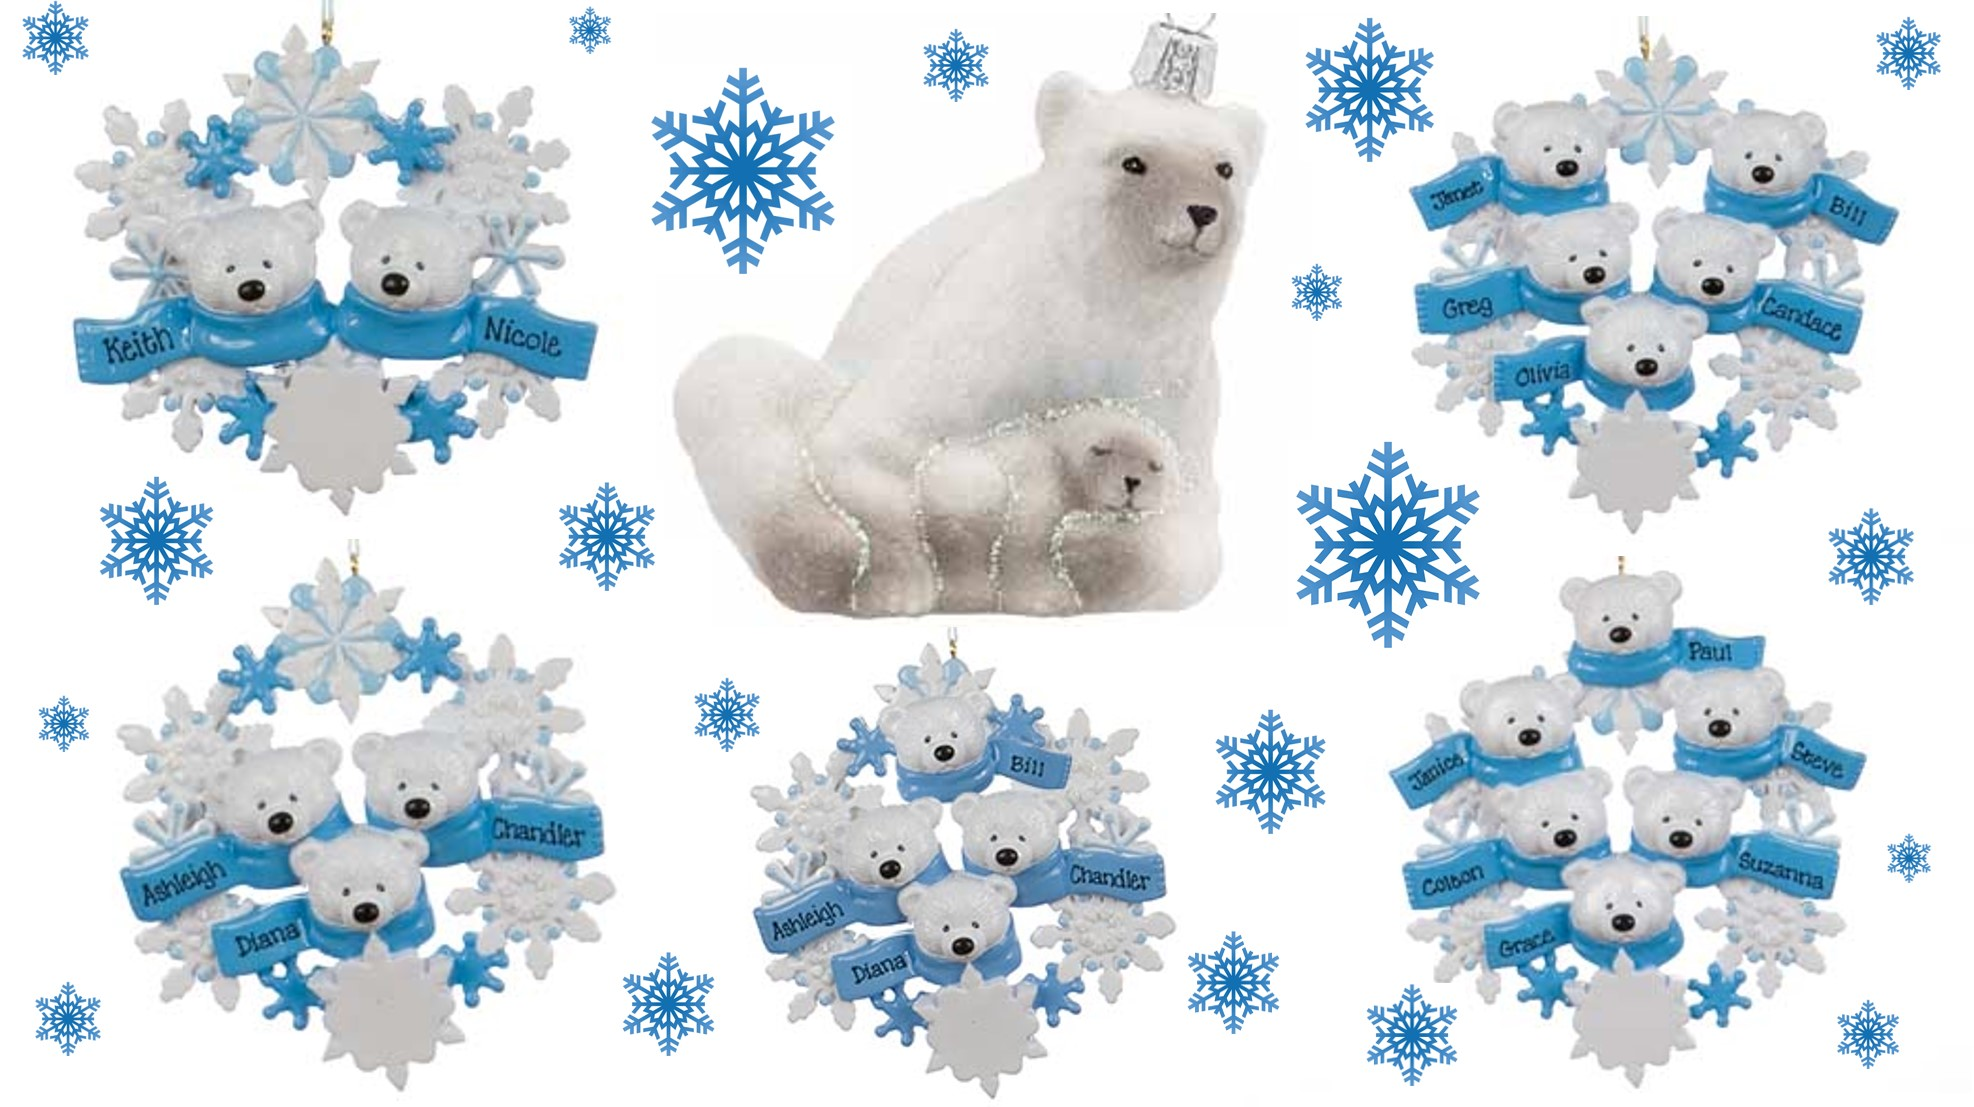 Polar Bear Ornaments that can be found to represent families. | OrnamentShop.com